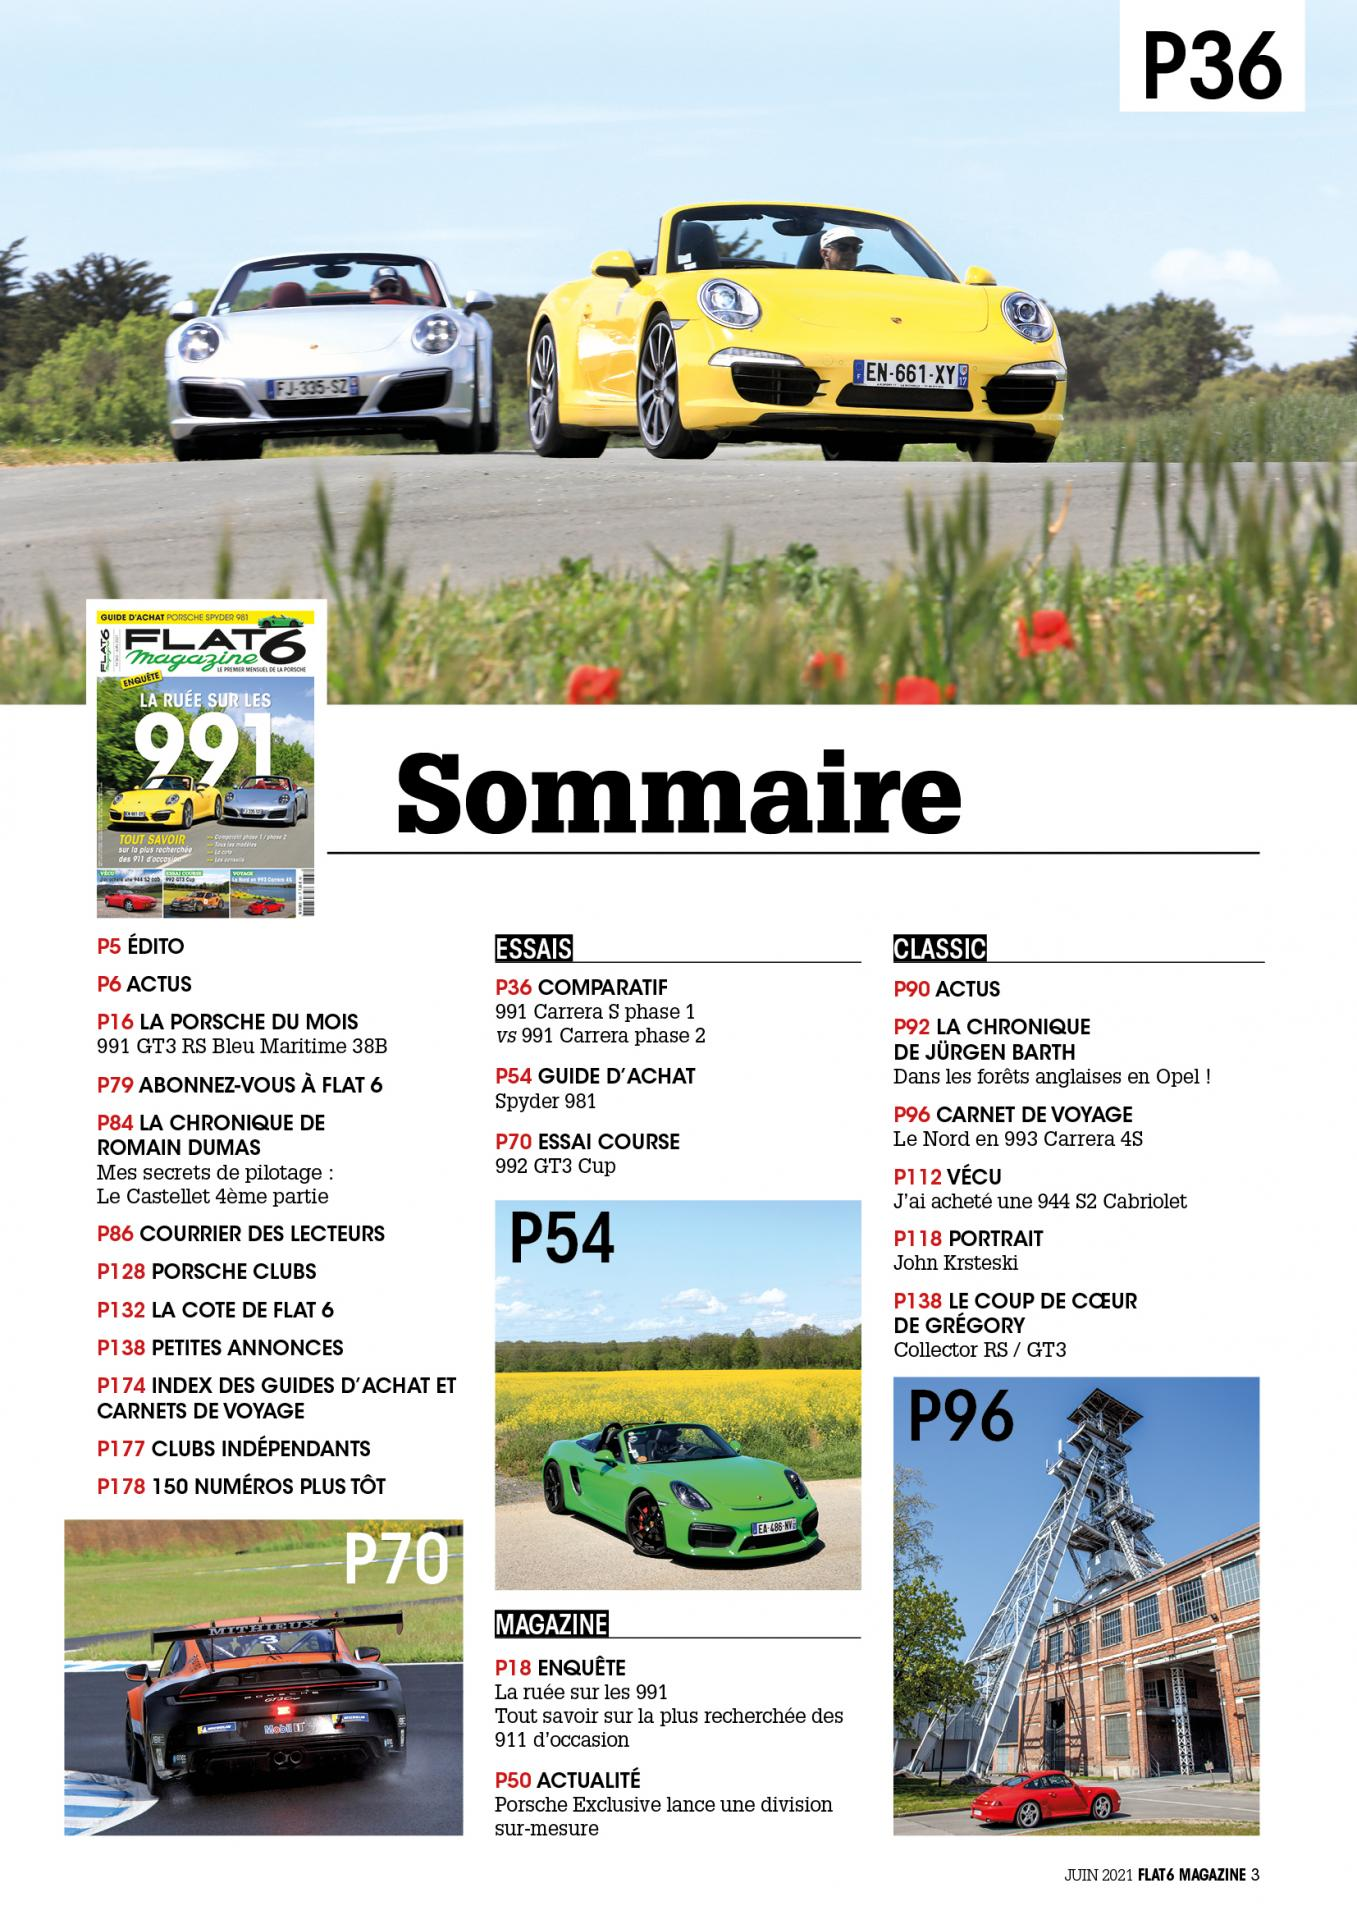 Sommaire363